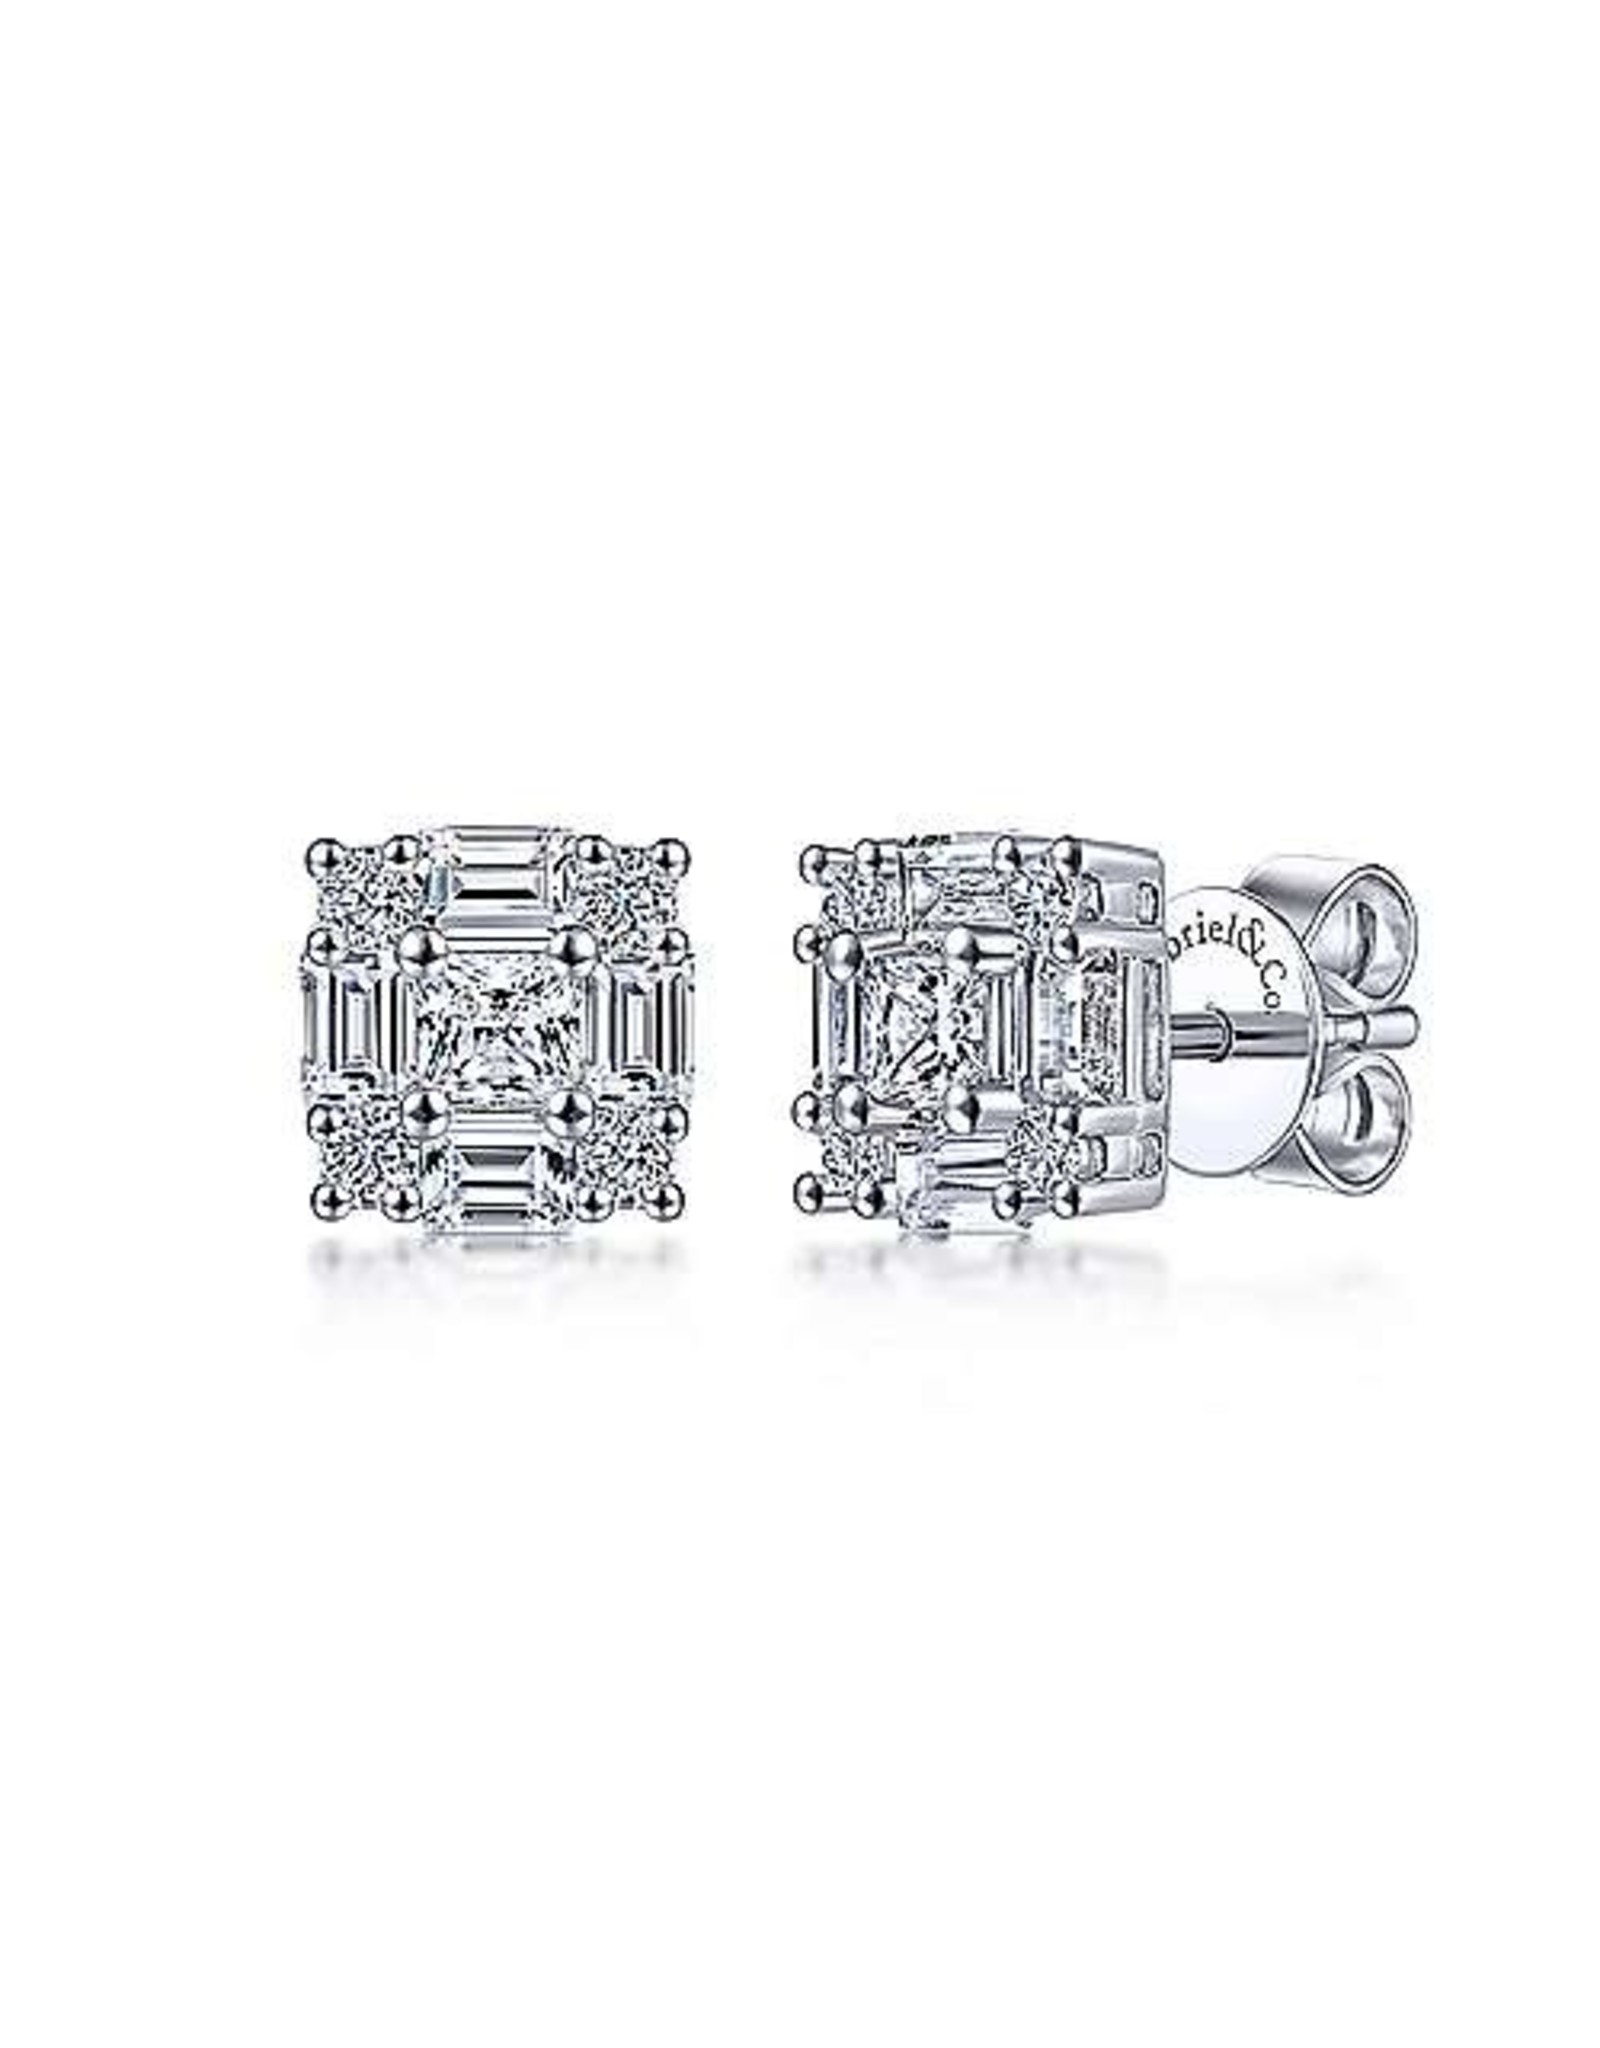 14K White Gold Baguette & Round Diamond Stud Earrings, D: 1.02ct